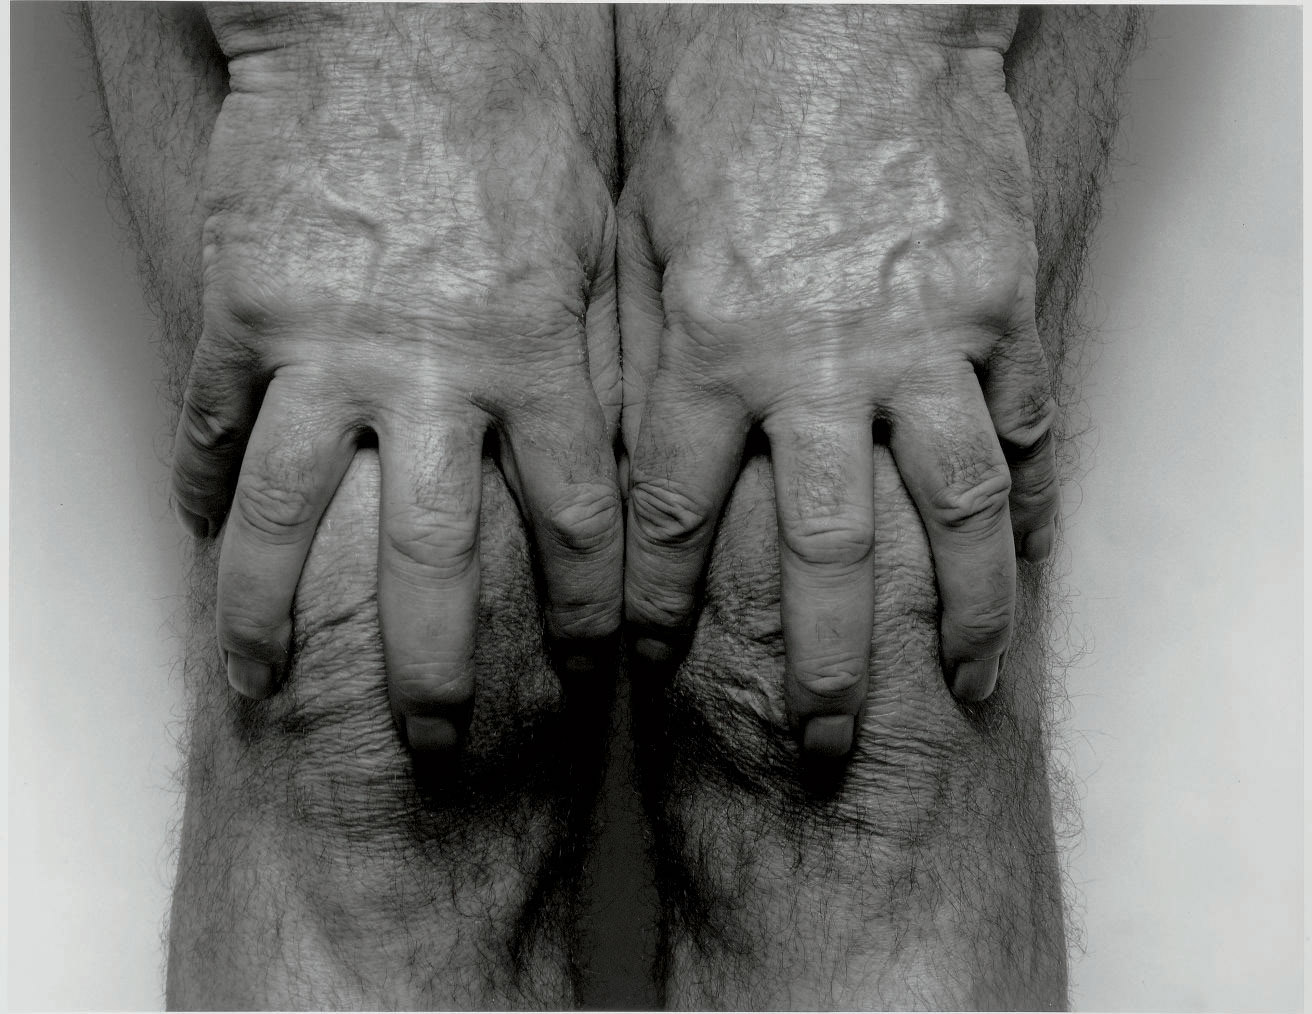 Self Portrait, Hands Spread on Knees, 1985